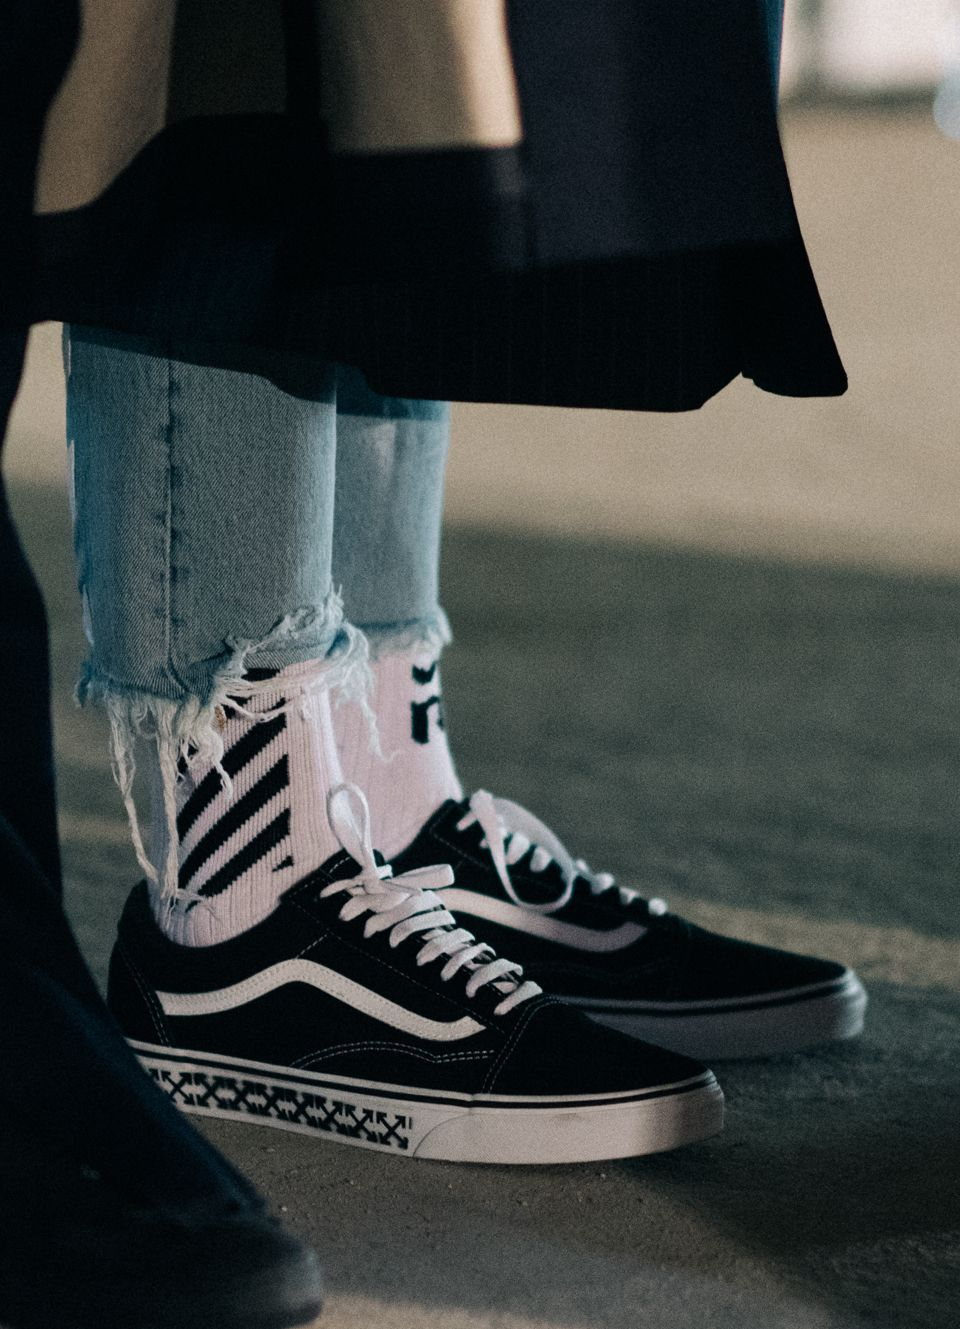 478408d9b3b ... Old Skool Vans. 31 Beautiful Sneakers You Wish You Had